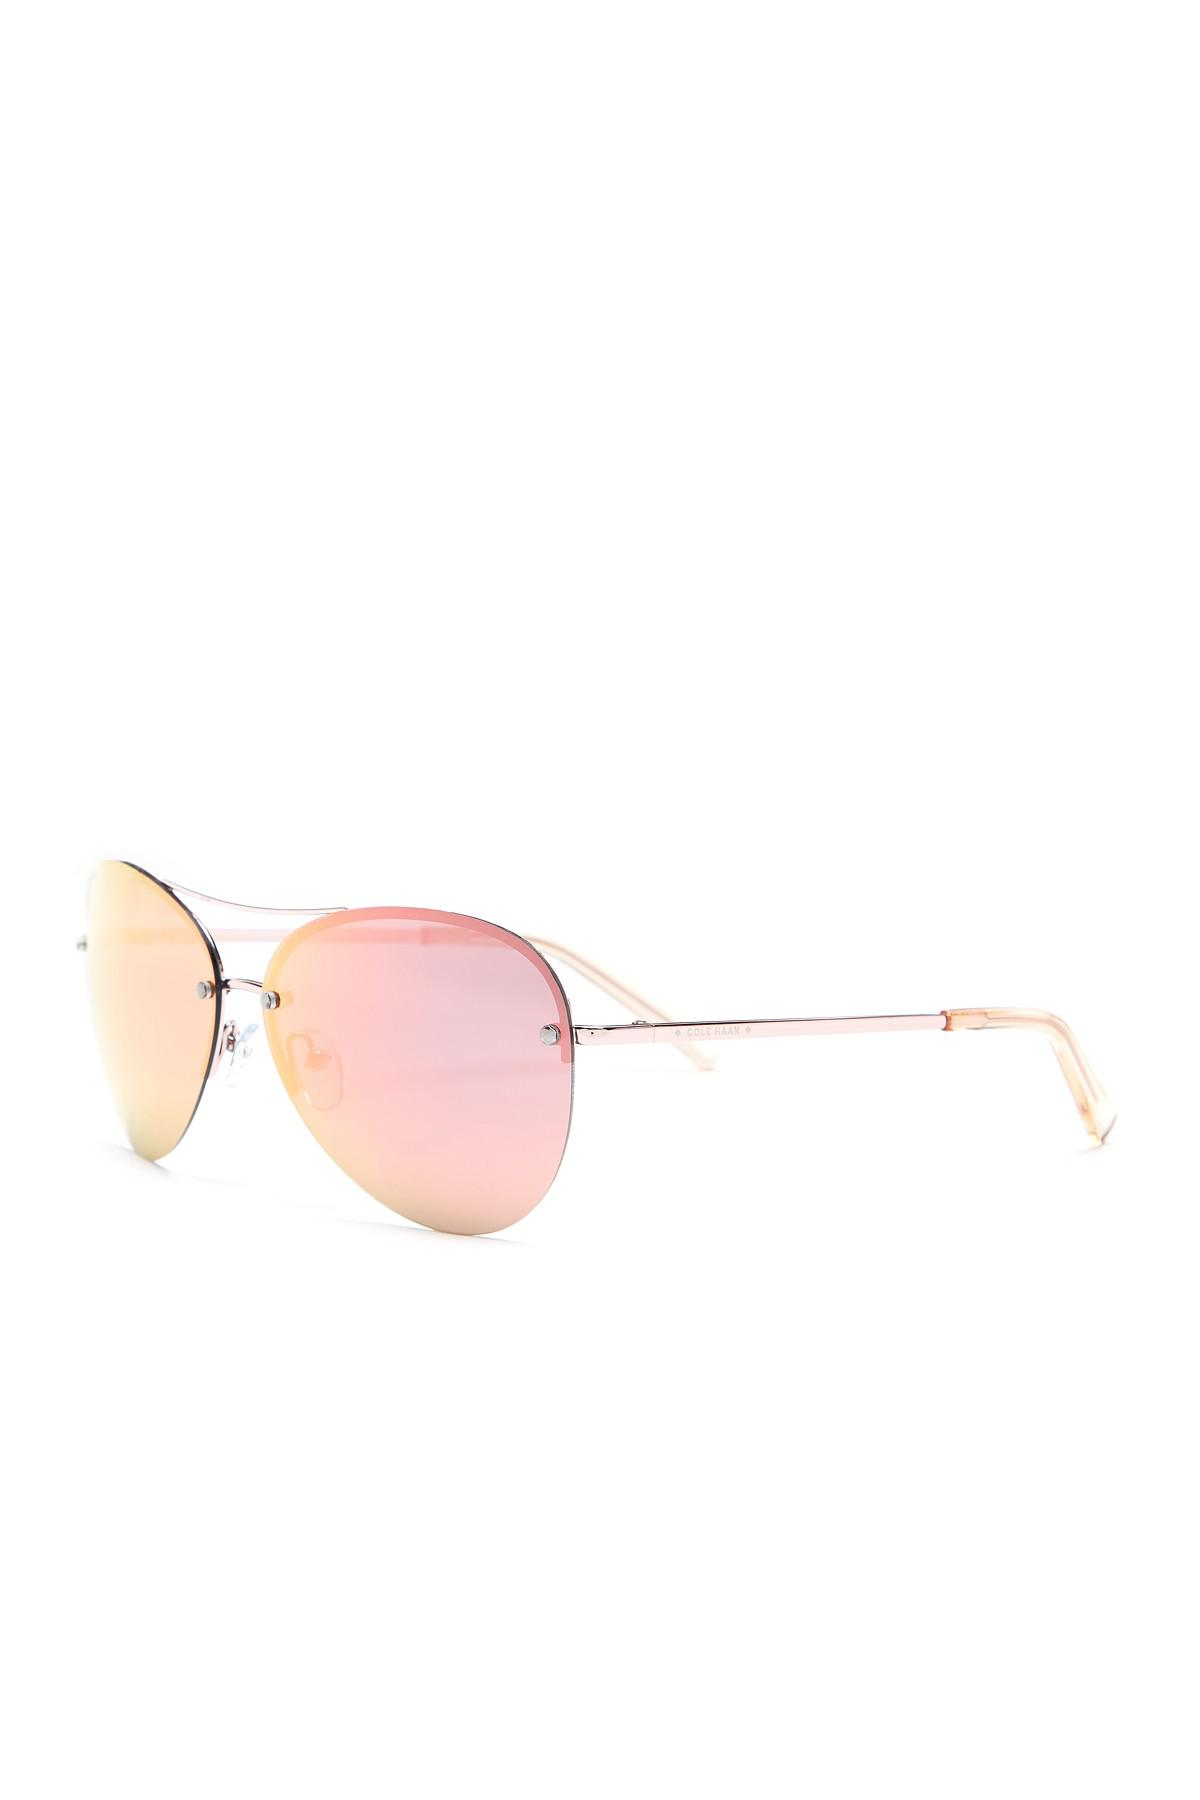 dc303586e7 Cole Haan Women s Wrap Aviator Polarized Sunglasses in Pink - Lyst